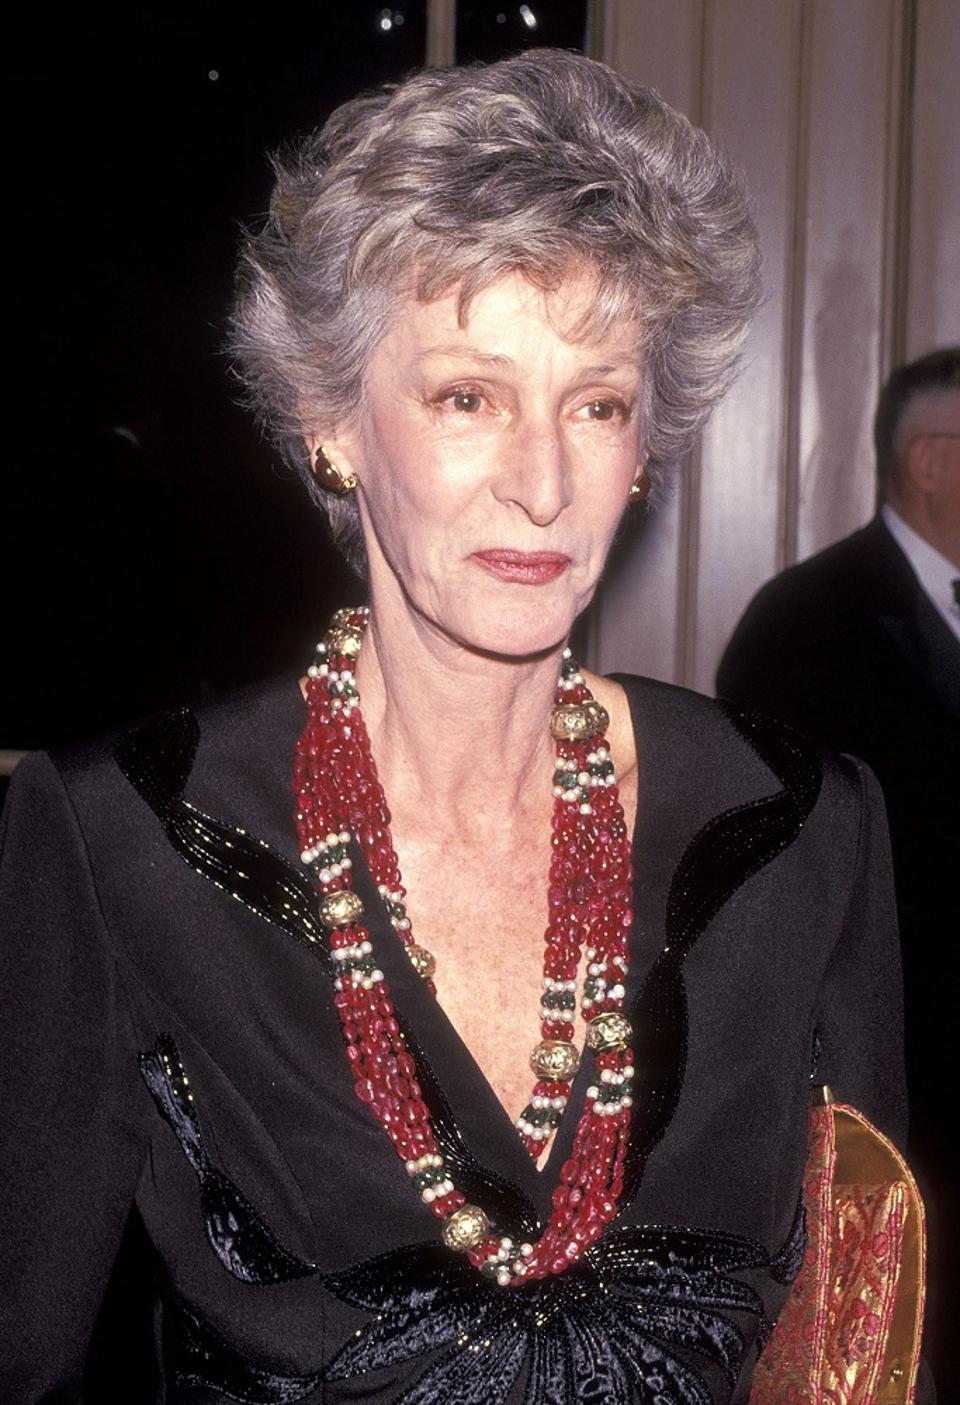 Marella Agnelli in 1991 wearing her iconic bead necklace created by The Gem Palace